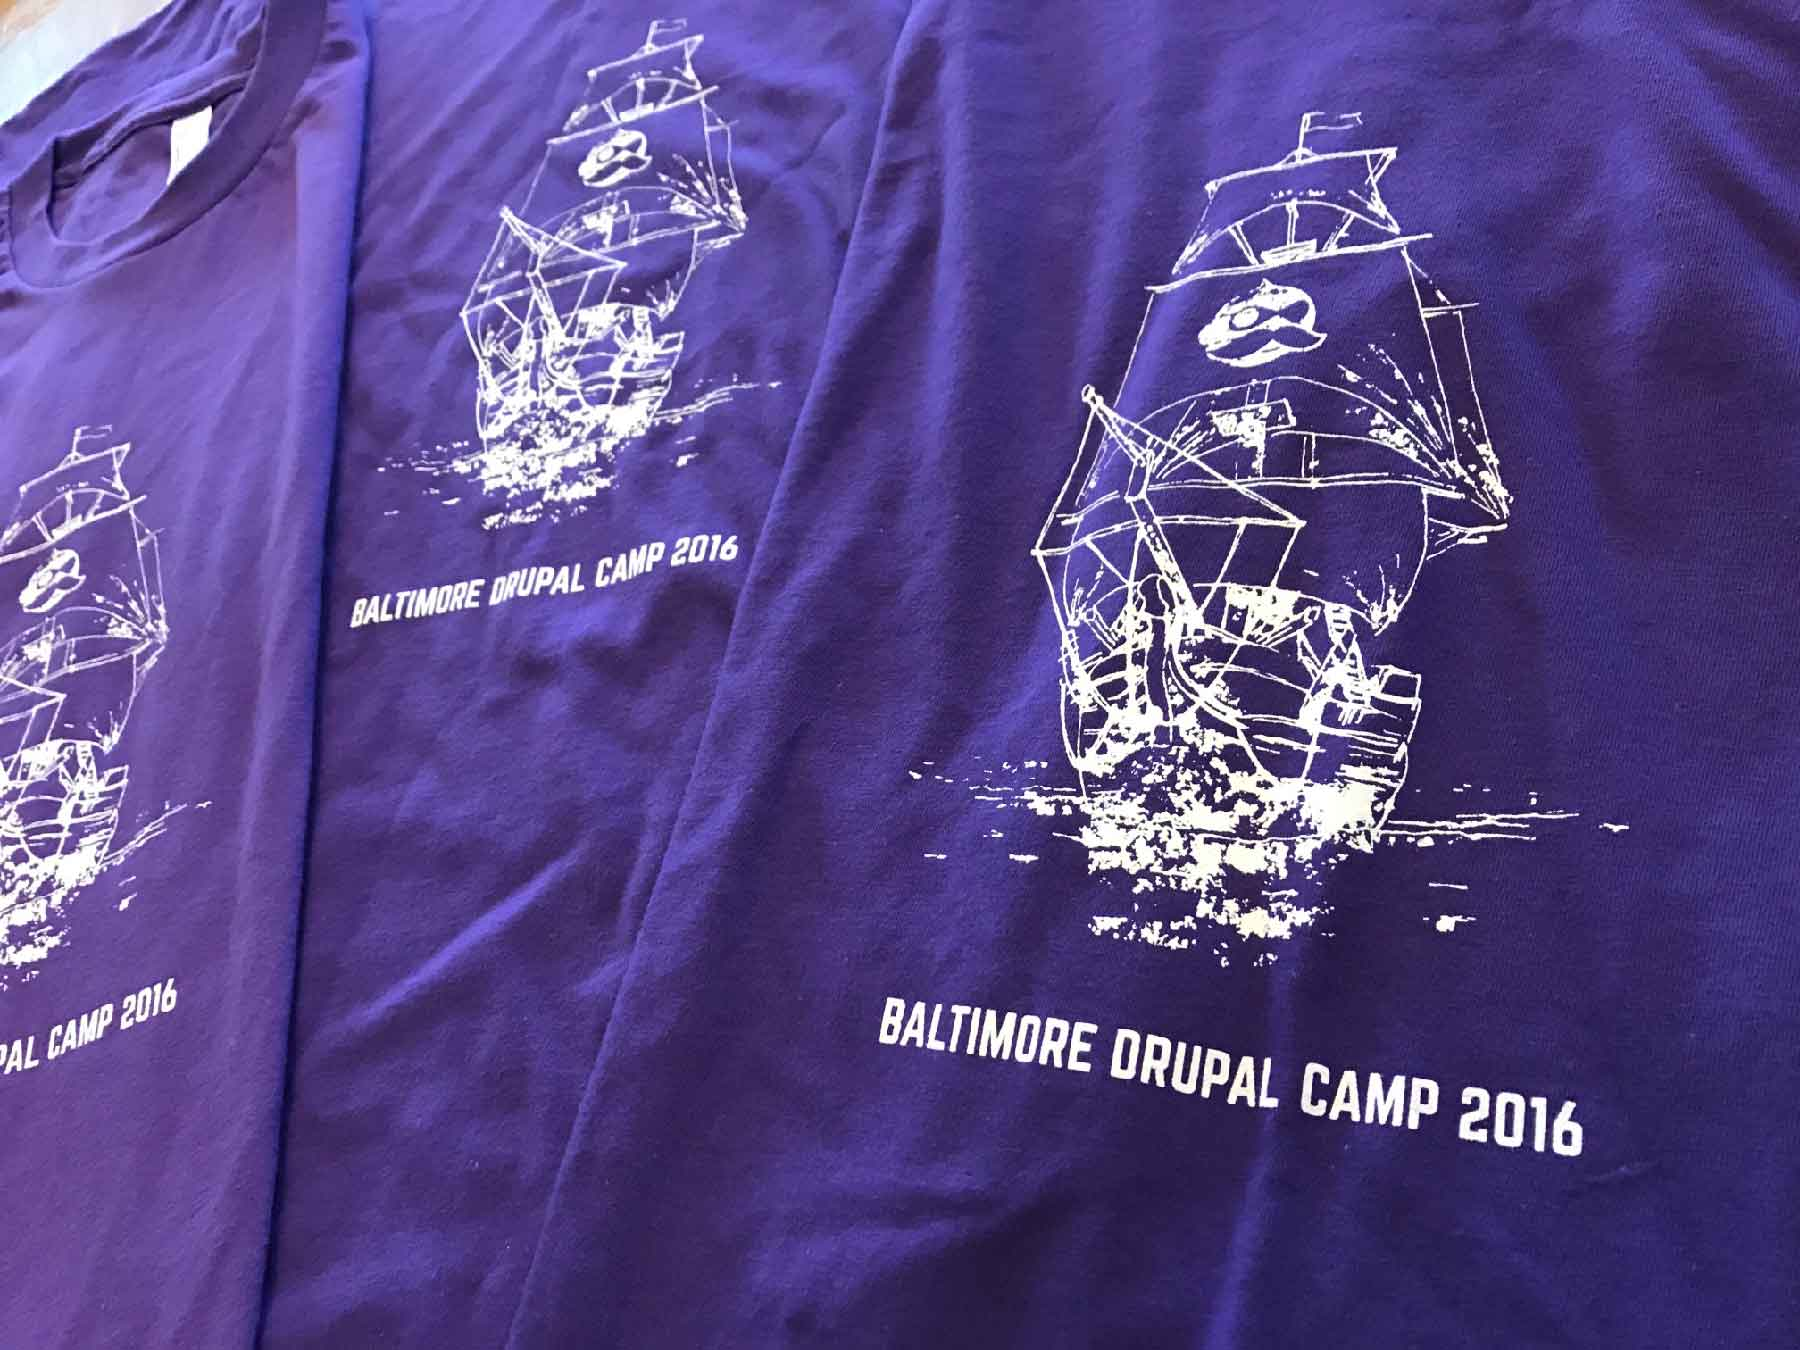 Baltimore Drupal Camp shirts with historic ship drawing